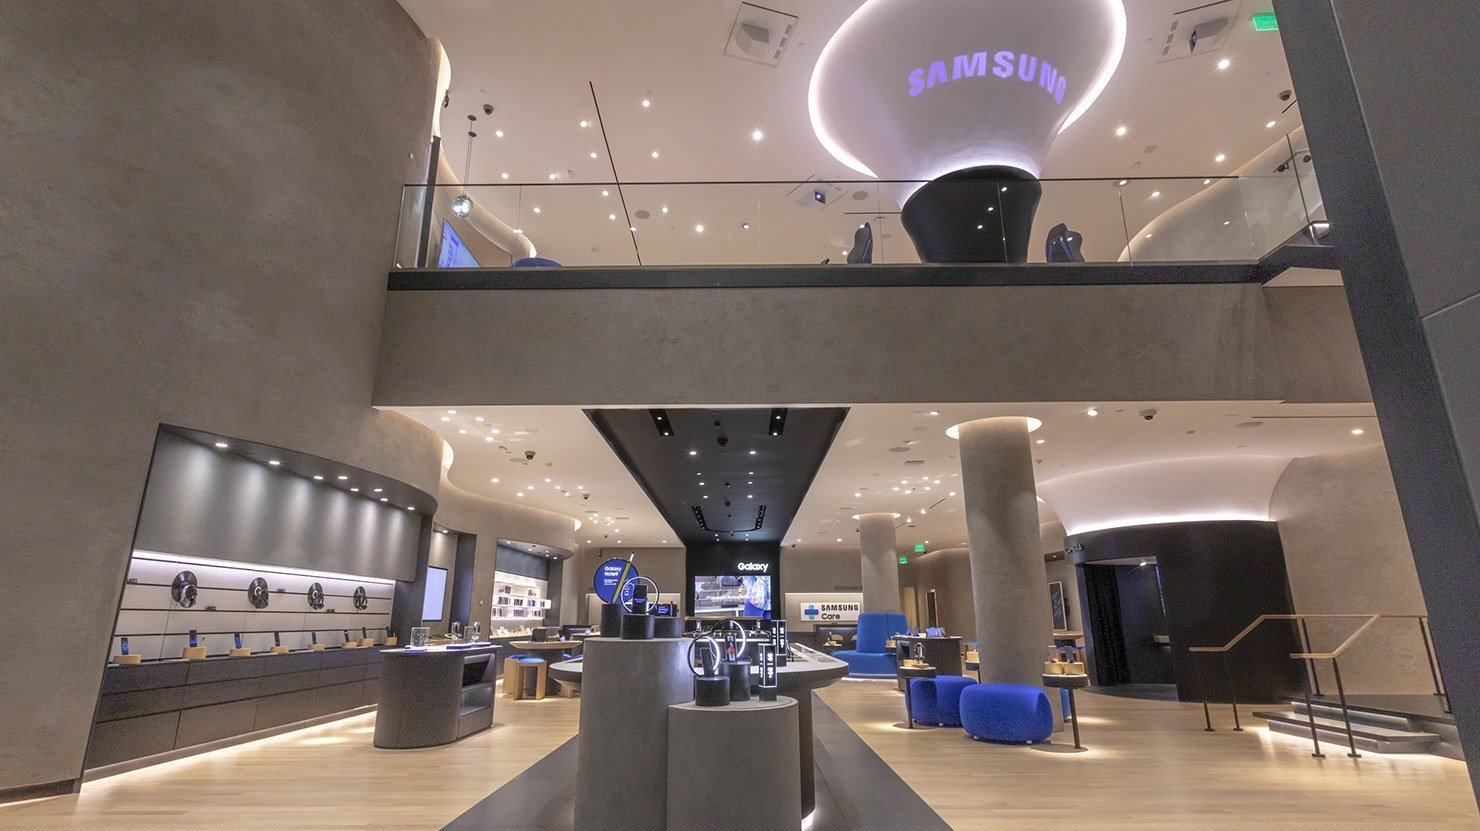 Samsung Experience Store LA Retail